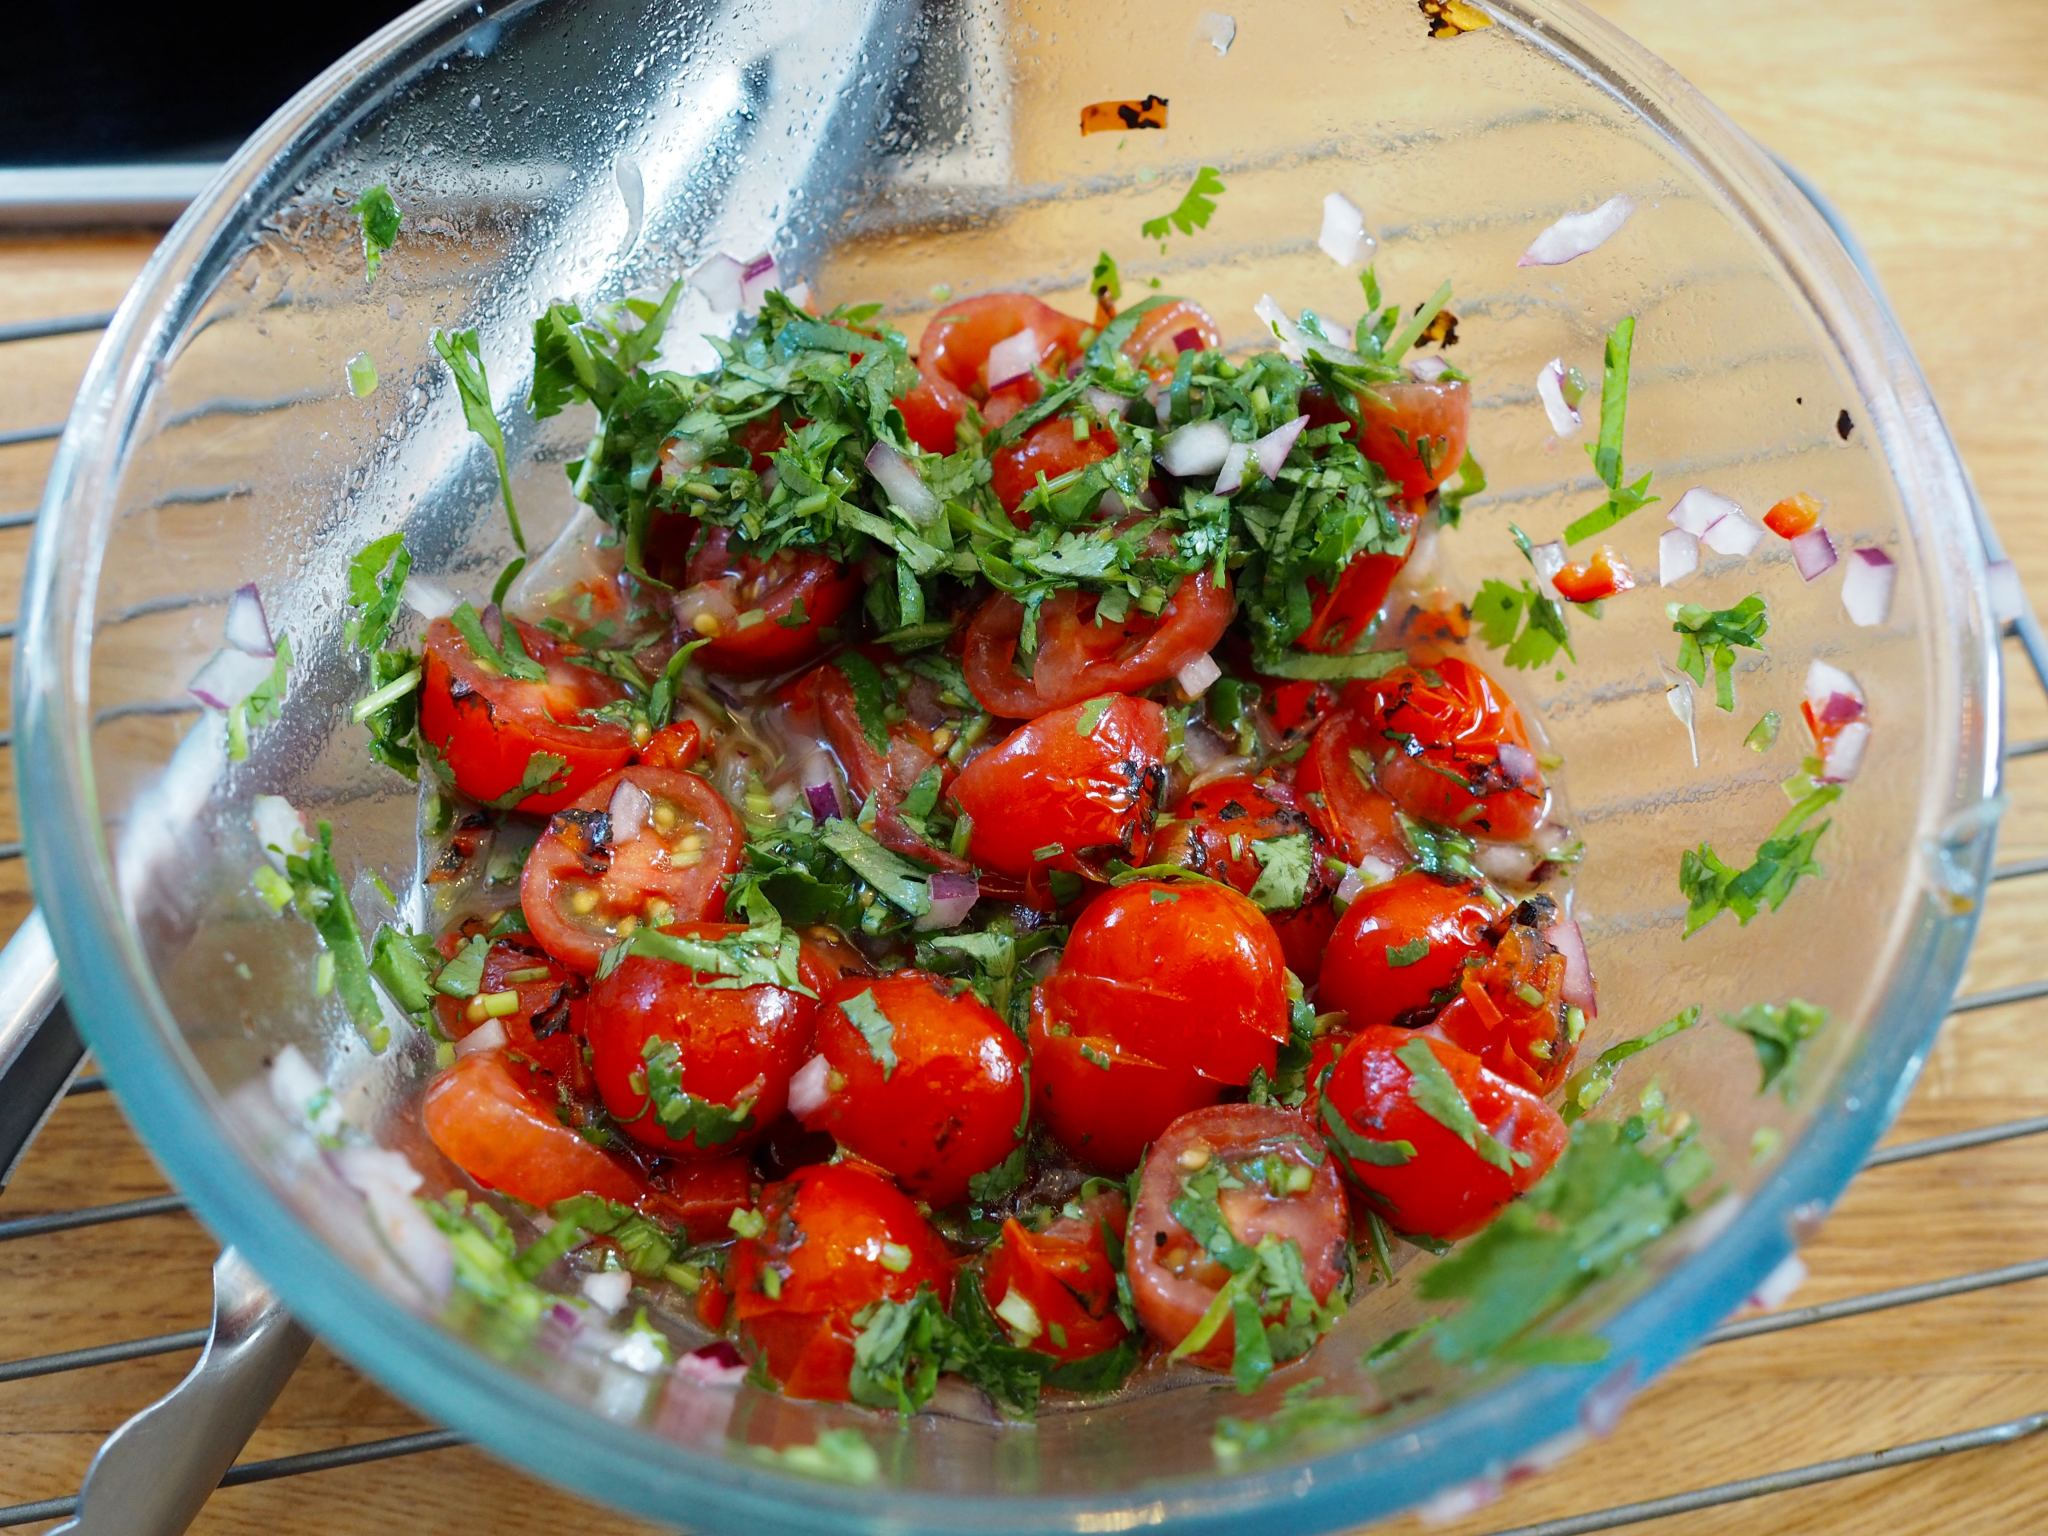 Chelsea Iceland School of fish cooking school neil nugent tomatoes